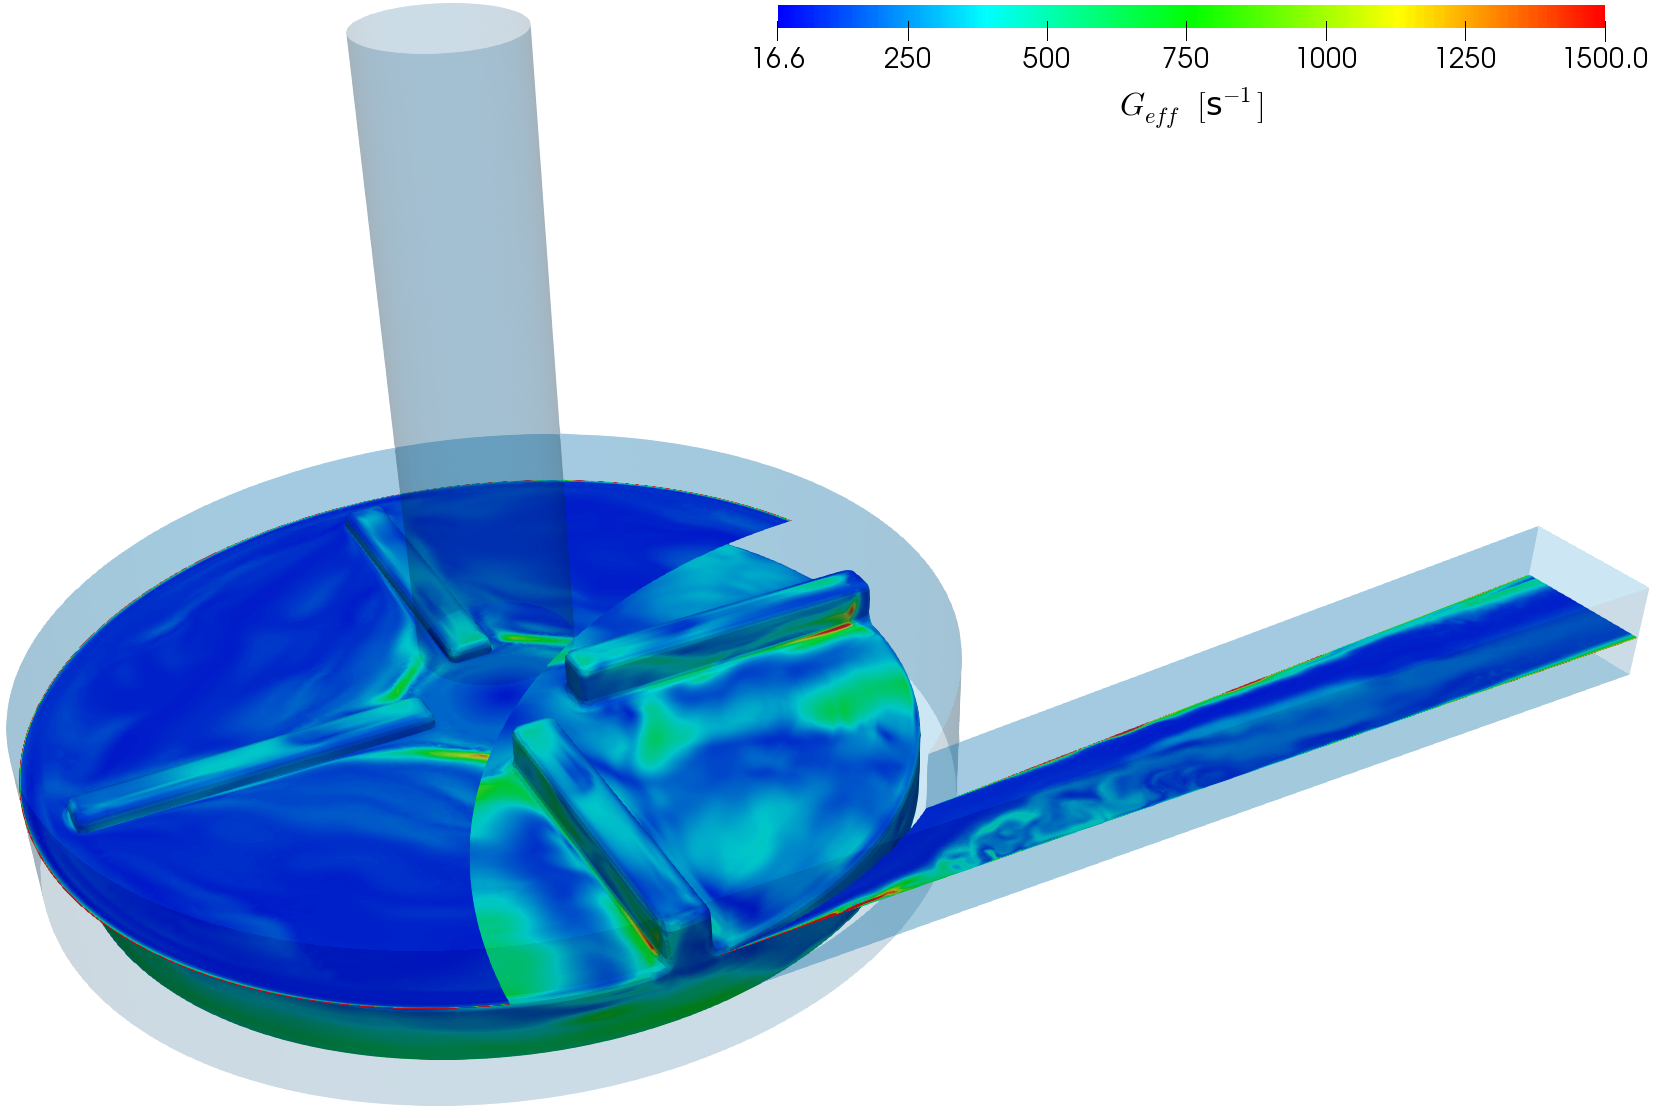 Flow simulation in a pump